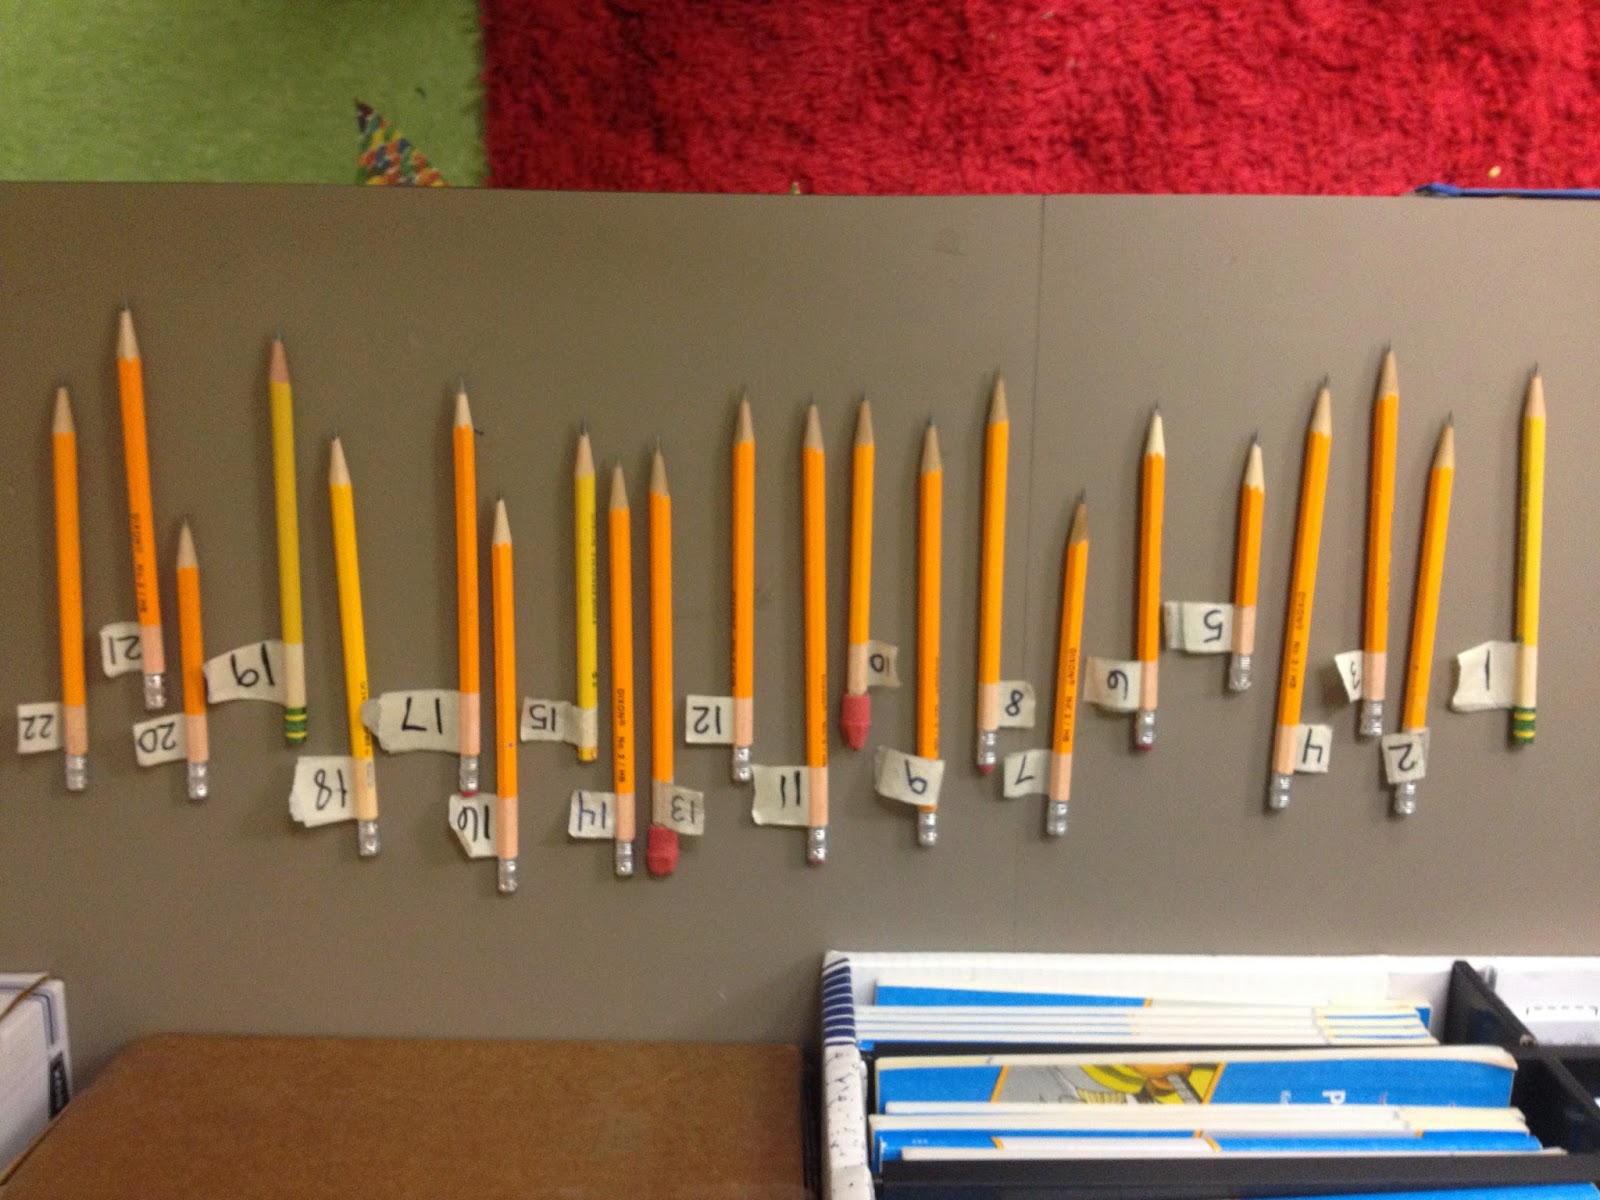 Guest blog post from Amy at Teaching in Blue Jeans who writes about Disappearing Pencil Woes today!